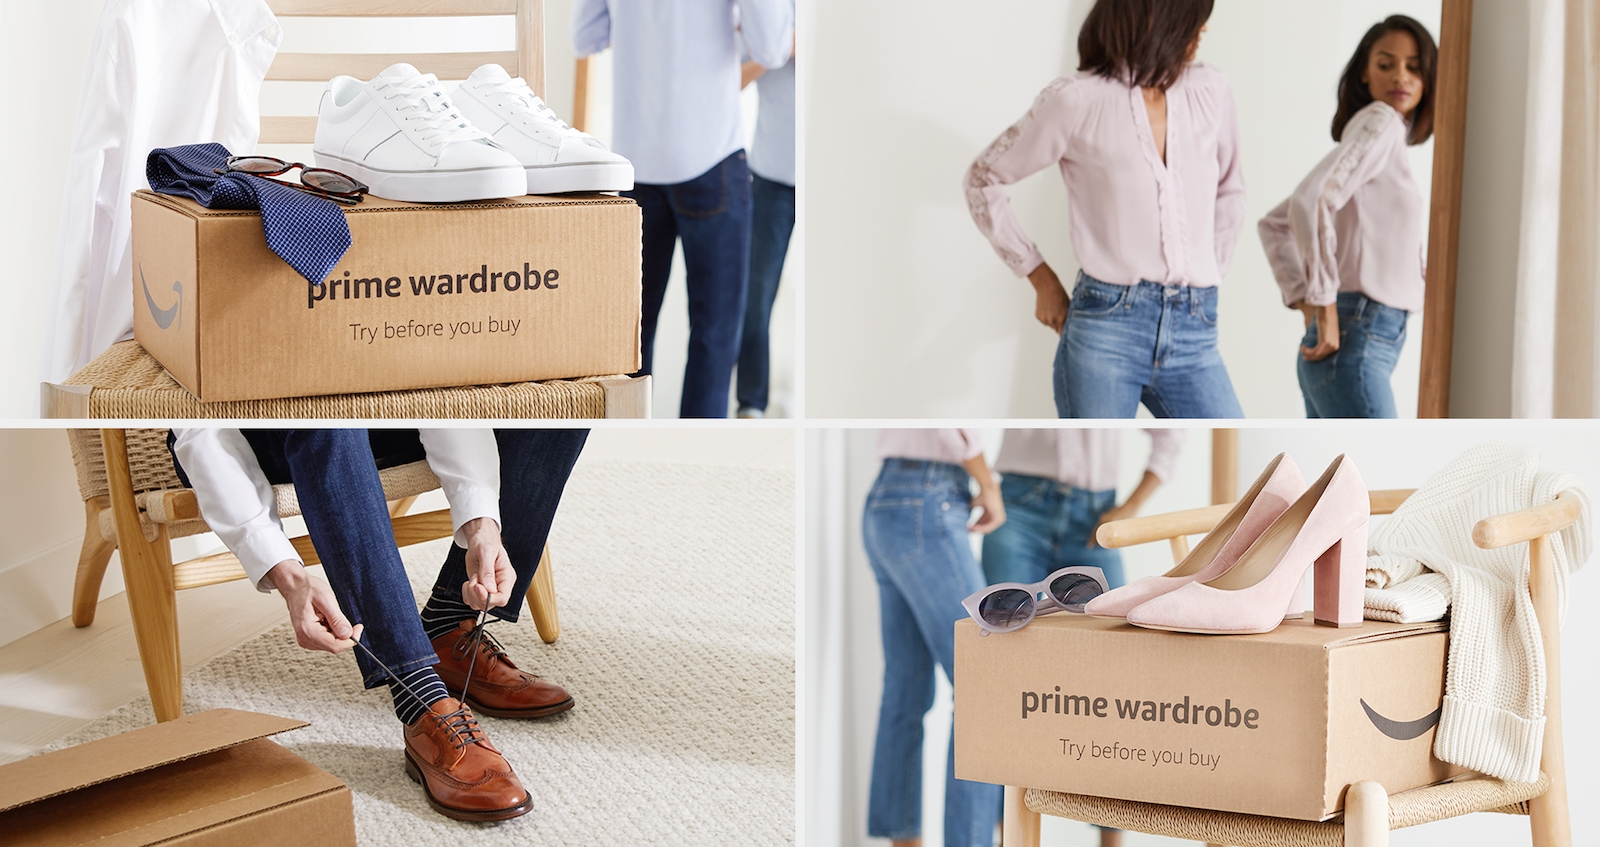 Amazon appears to be expanding its Prime Wardrobe service | DeviceDaily.com